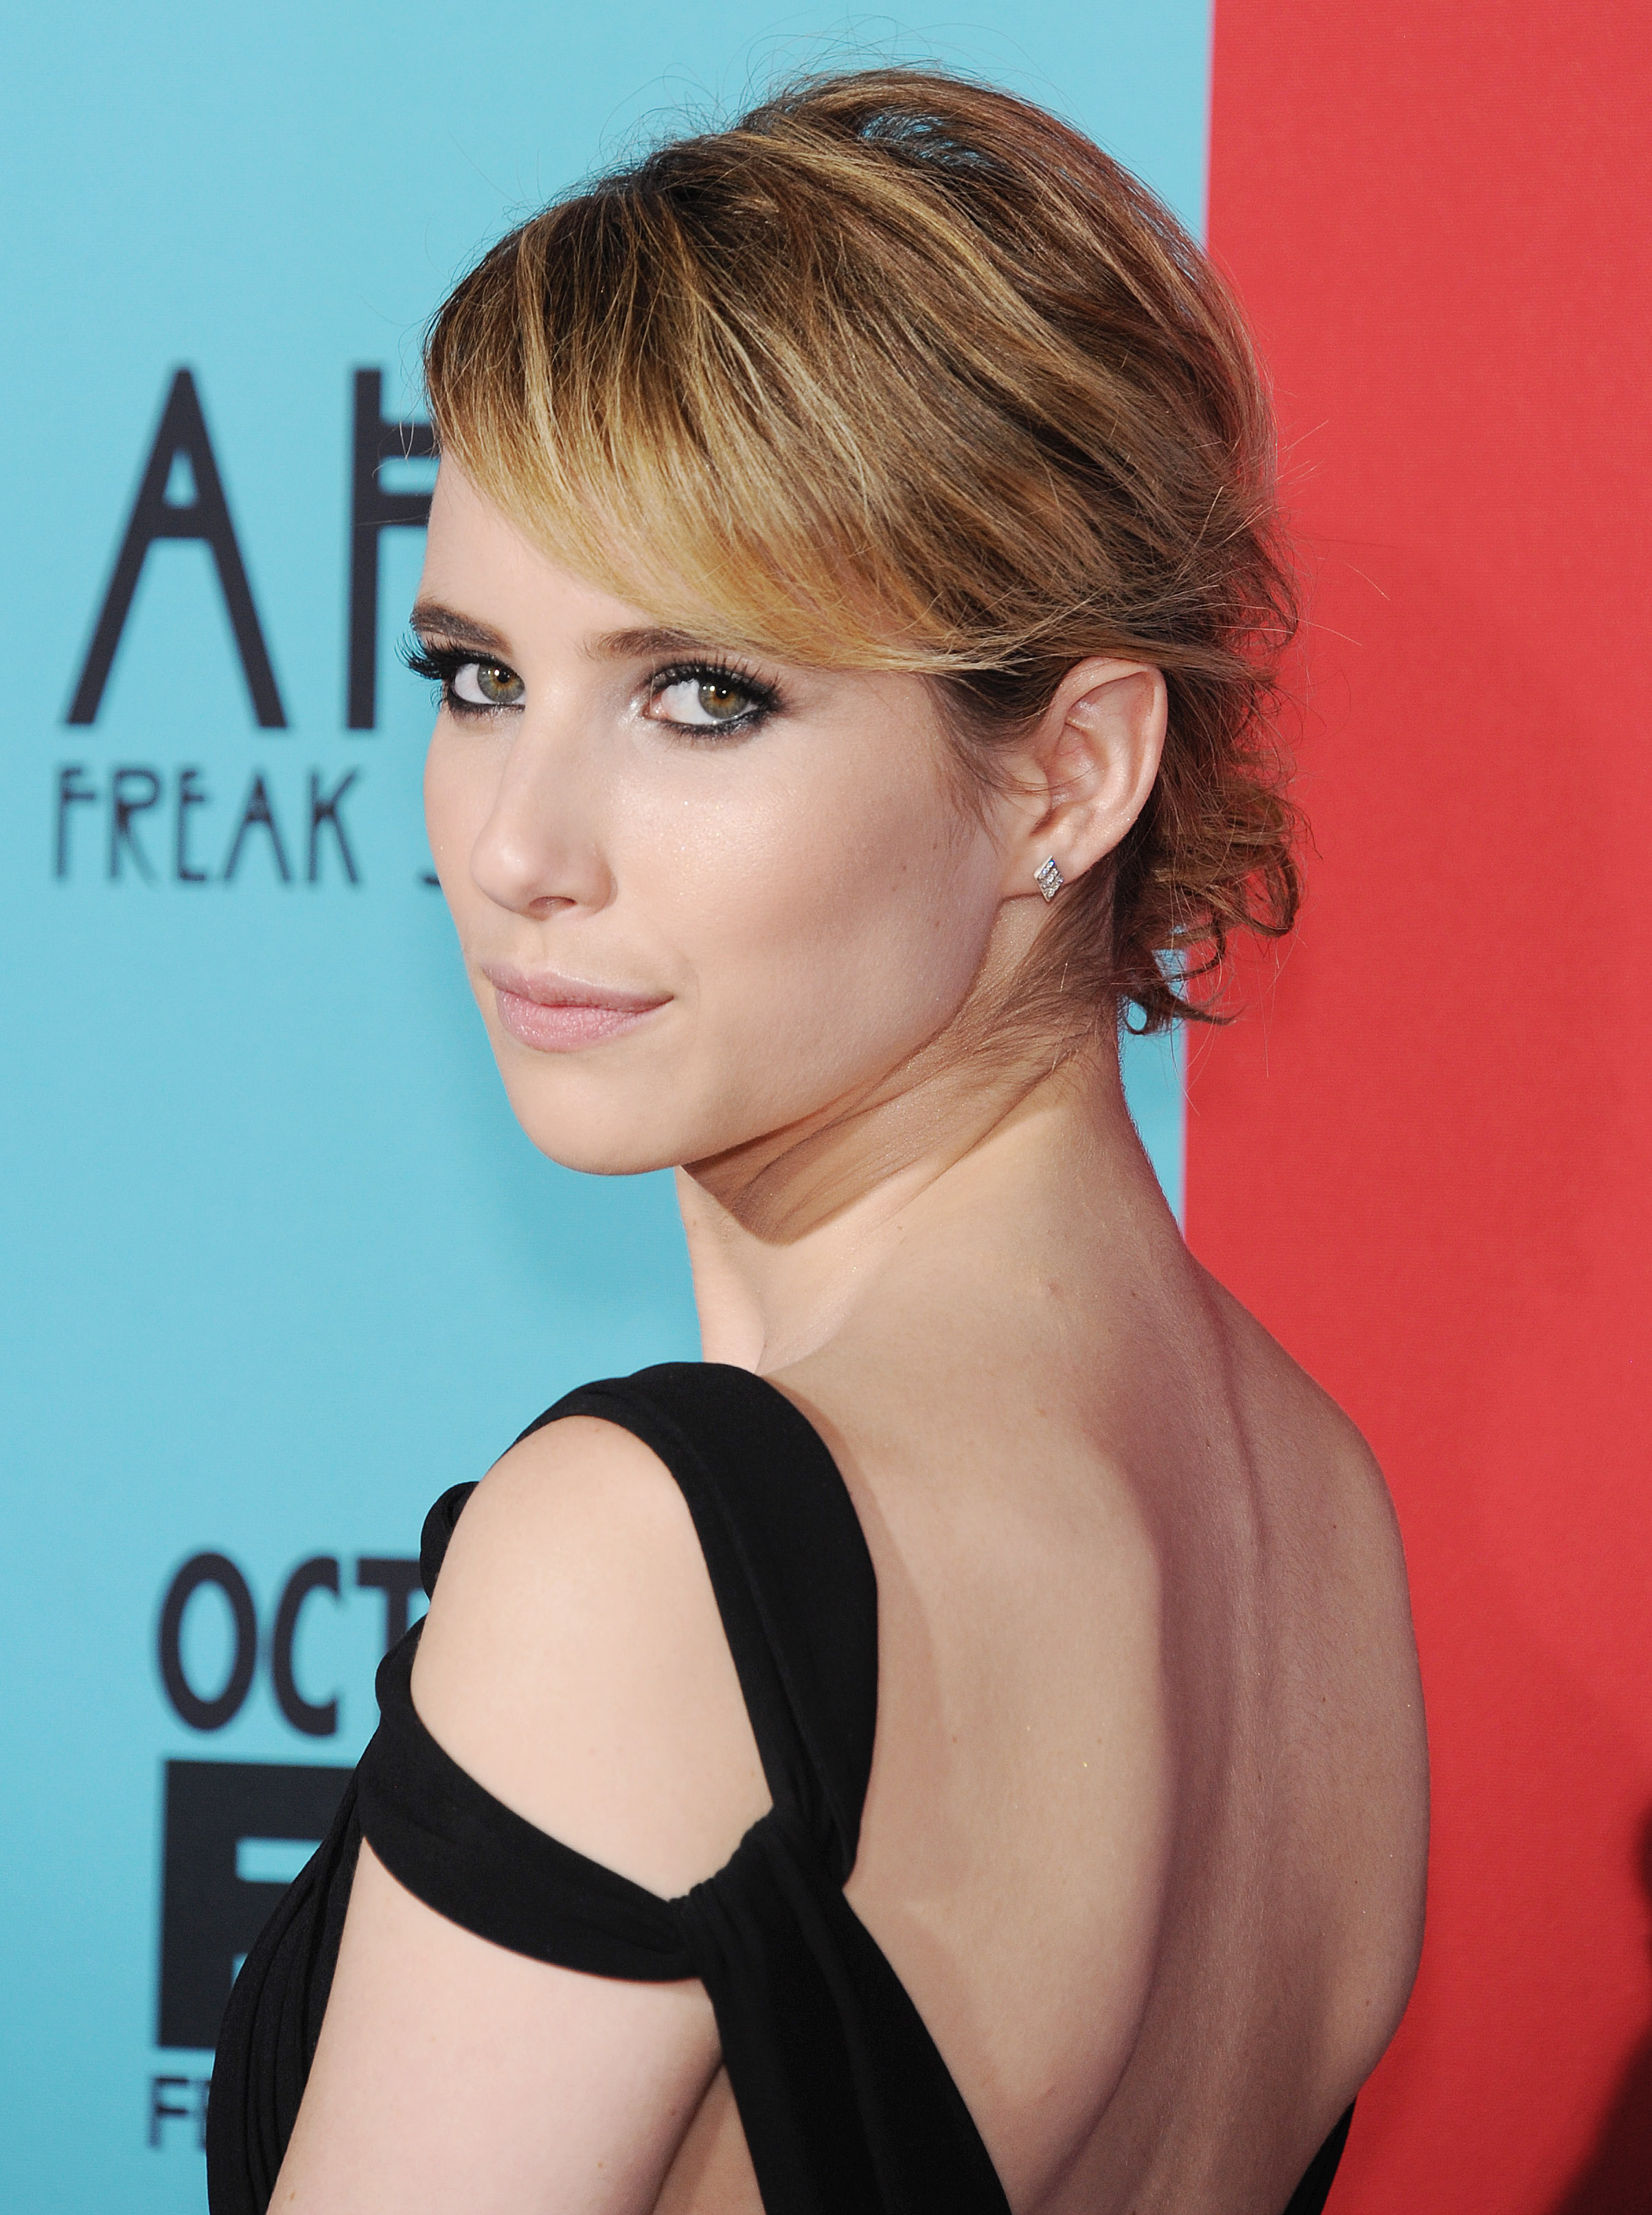 'Emma Roberts at the American Horror Story: Freak Show' red carpet premiere in Los Angeles.